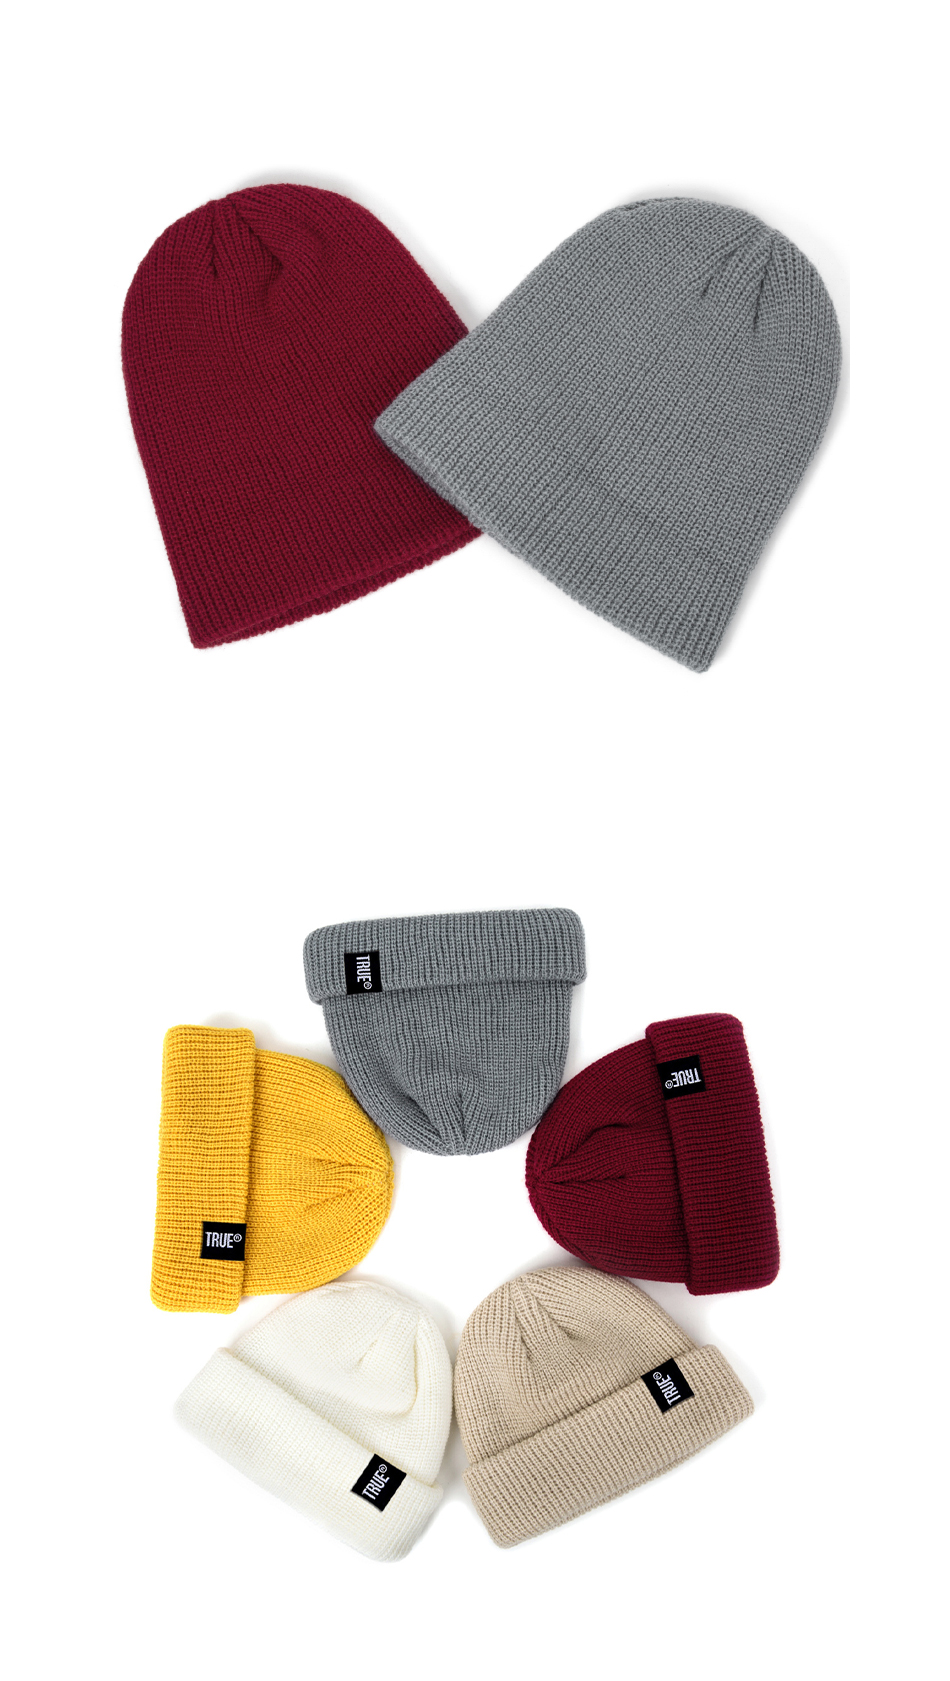 2021 Fashion Unisex Winter Hat Men Cuffed Cib Knit Hat Short Melon Ski Beanies Autumn Winter Solid Color Casual Beanie Hat 26